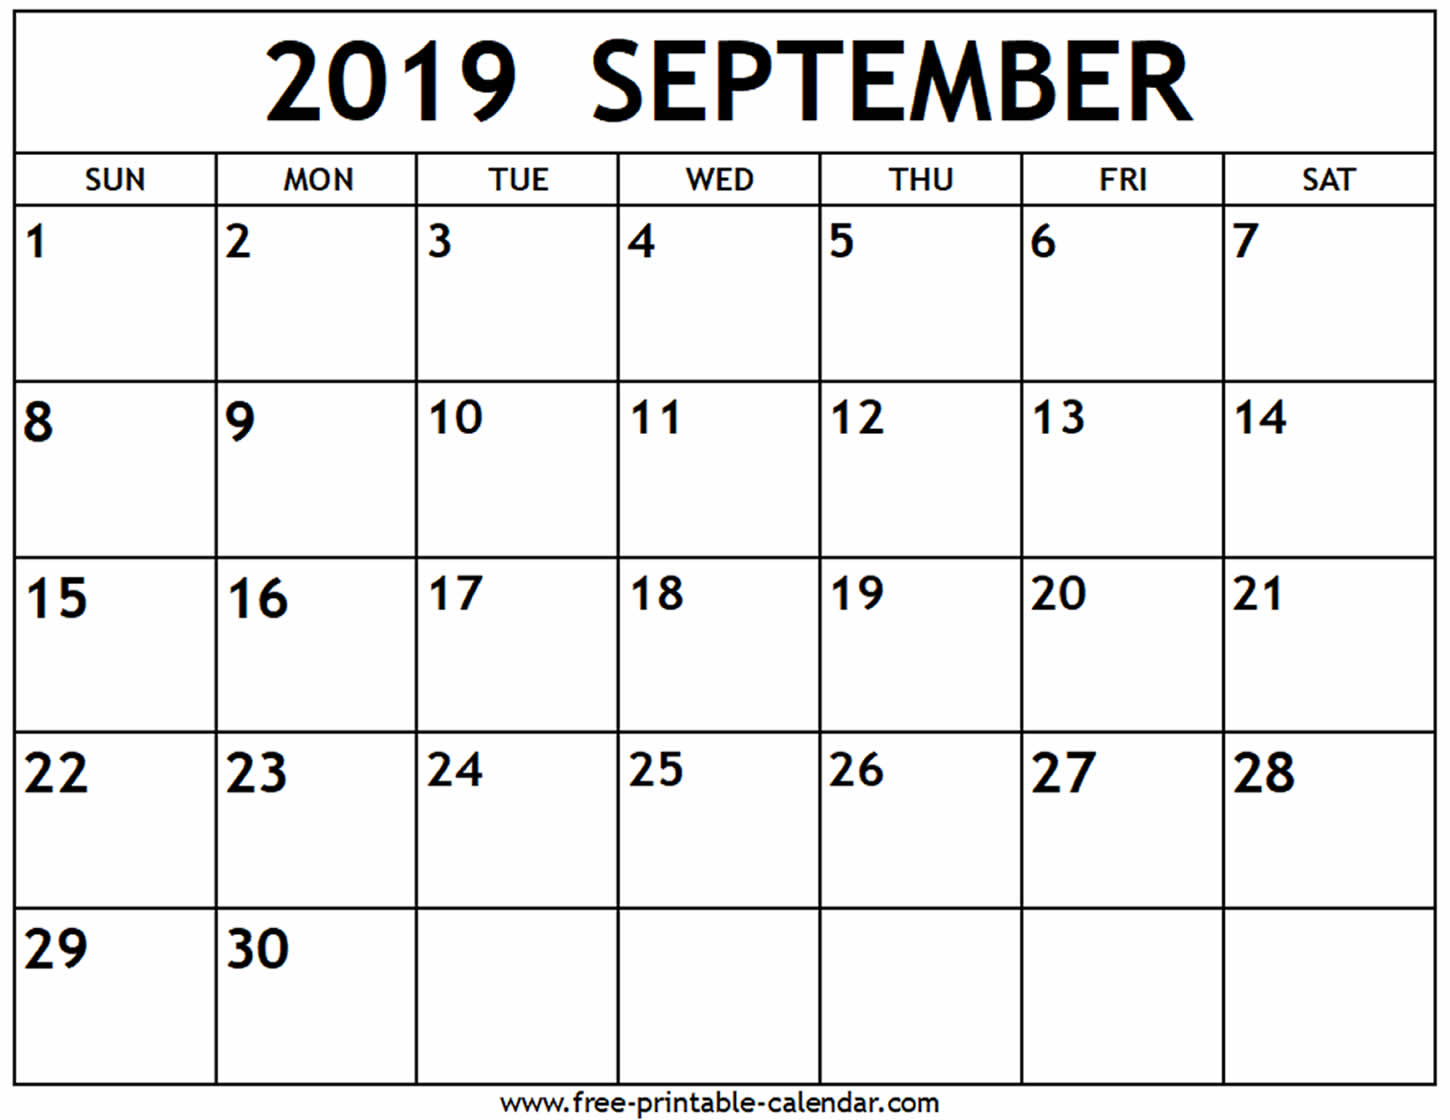 September 2019 Calendar - Free-Printable-Calendar pertaining to Blank Calendar Print-Outs Fill In Sept